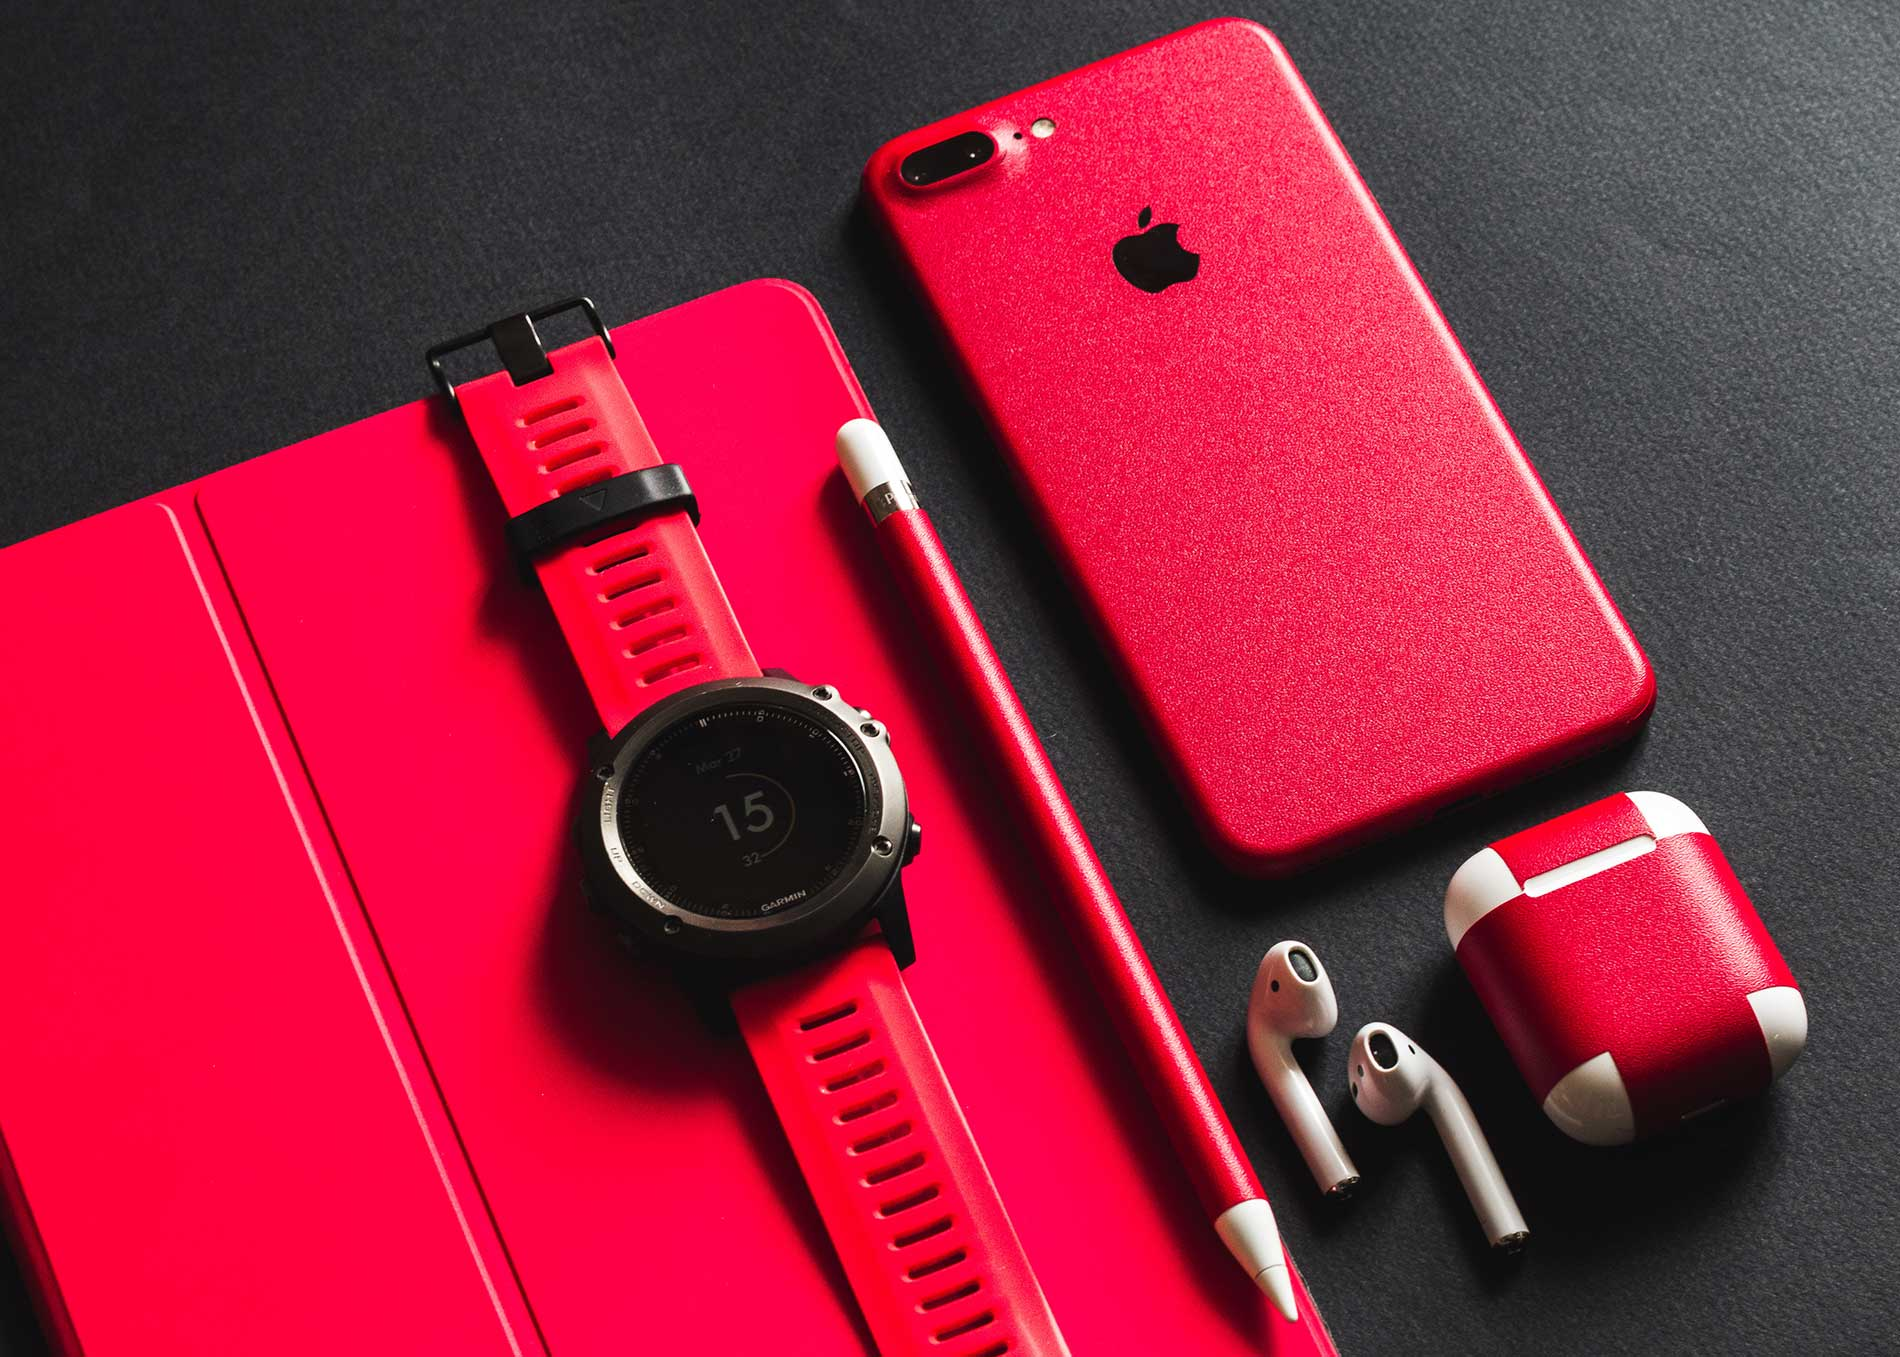 iPhone, iWatch, AirPods Red